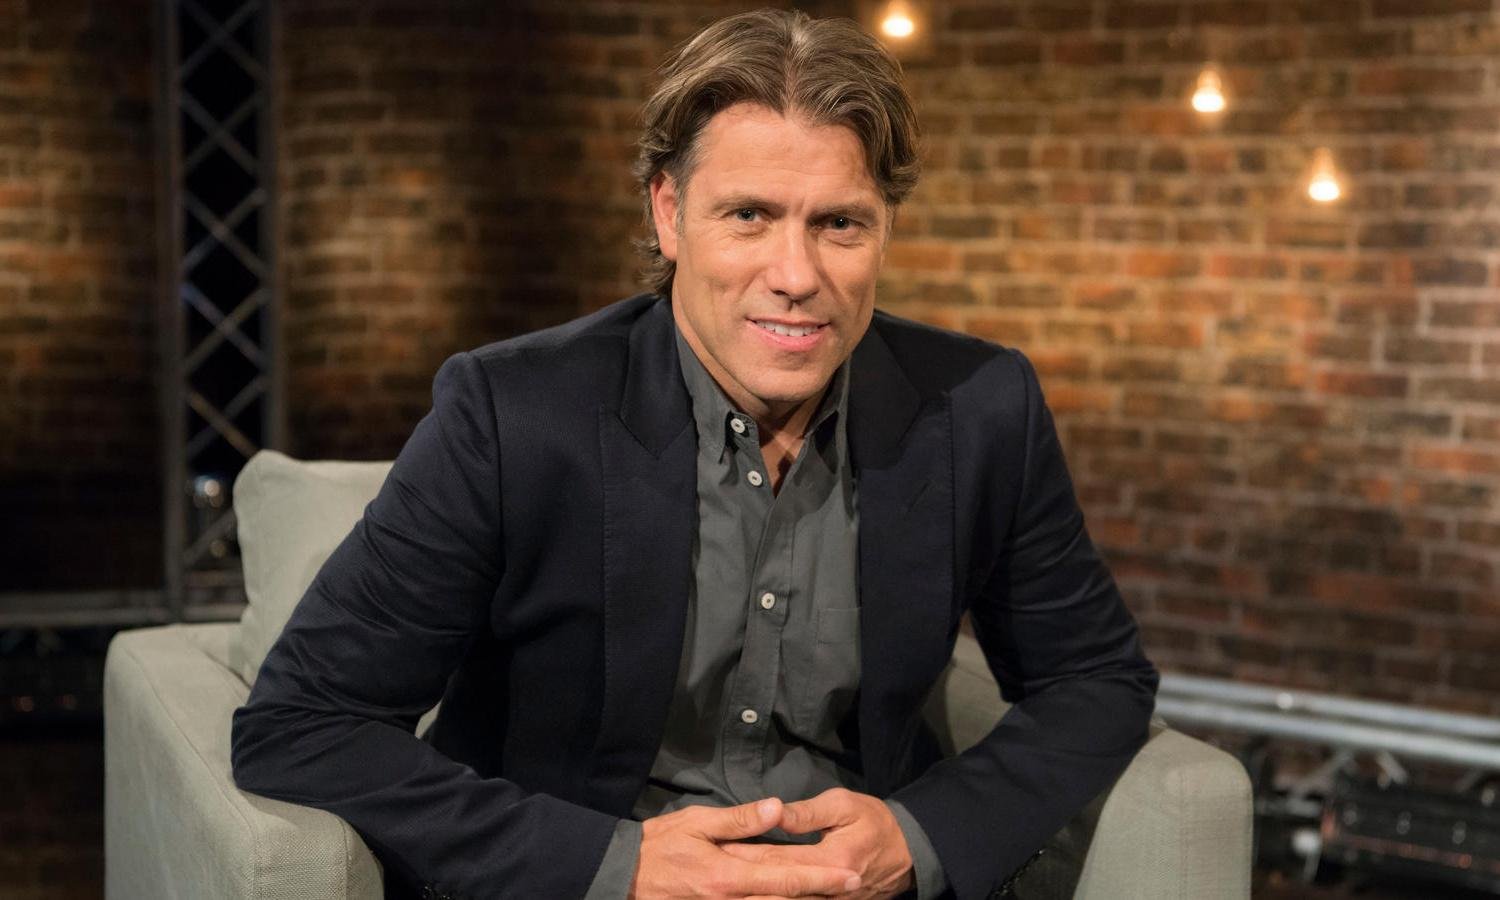 Comedian and HS2 critic John Bishop one of biggest gainers from controversial line